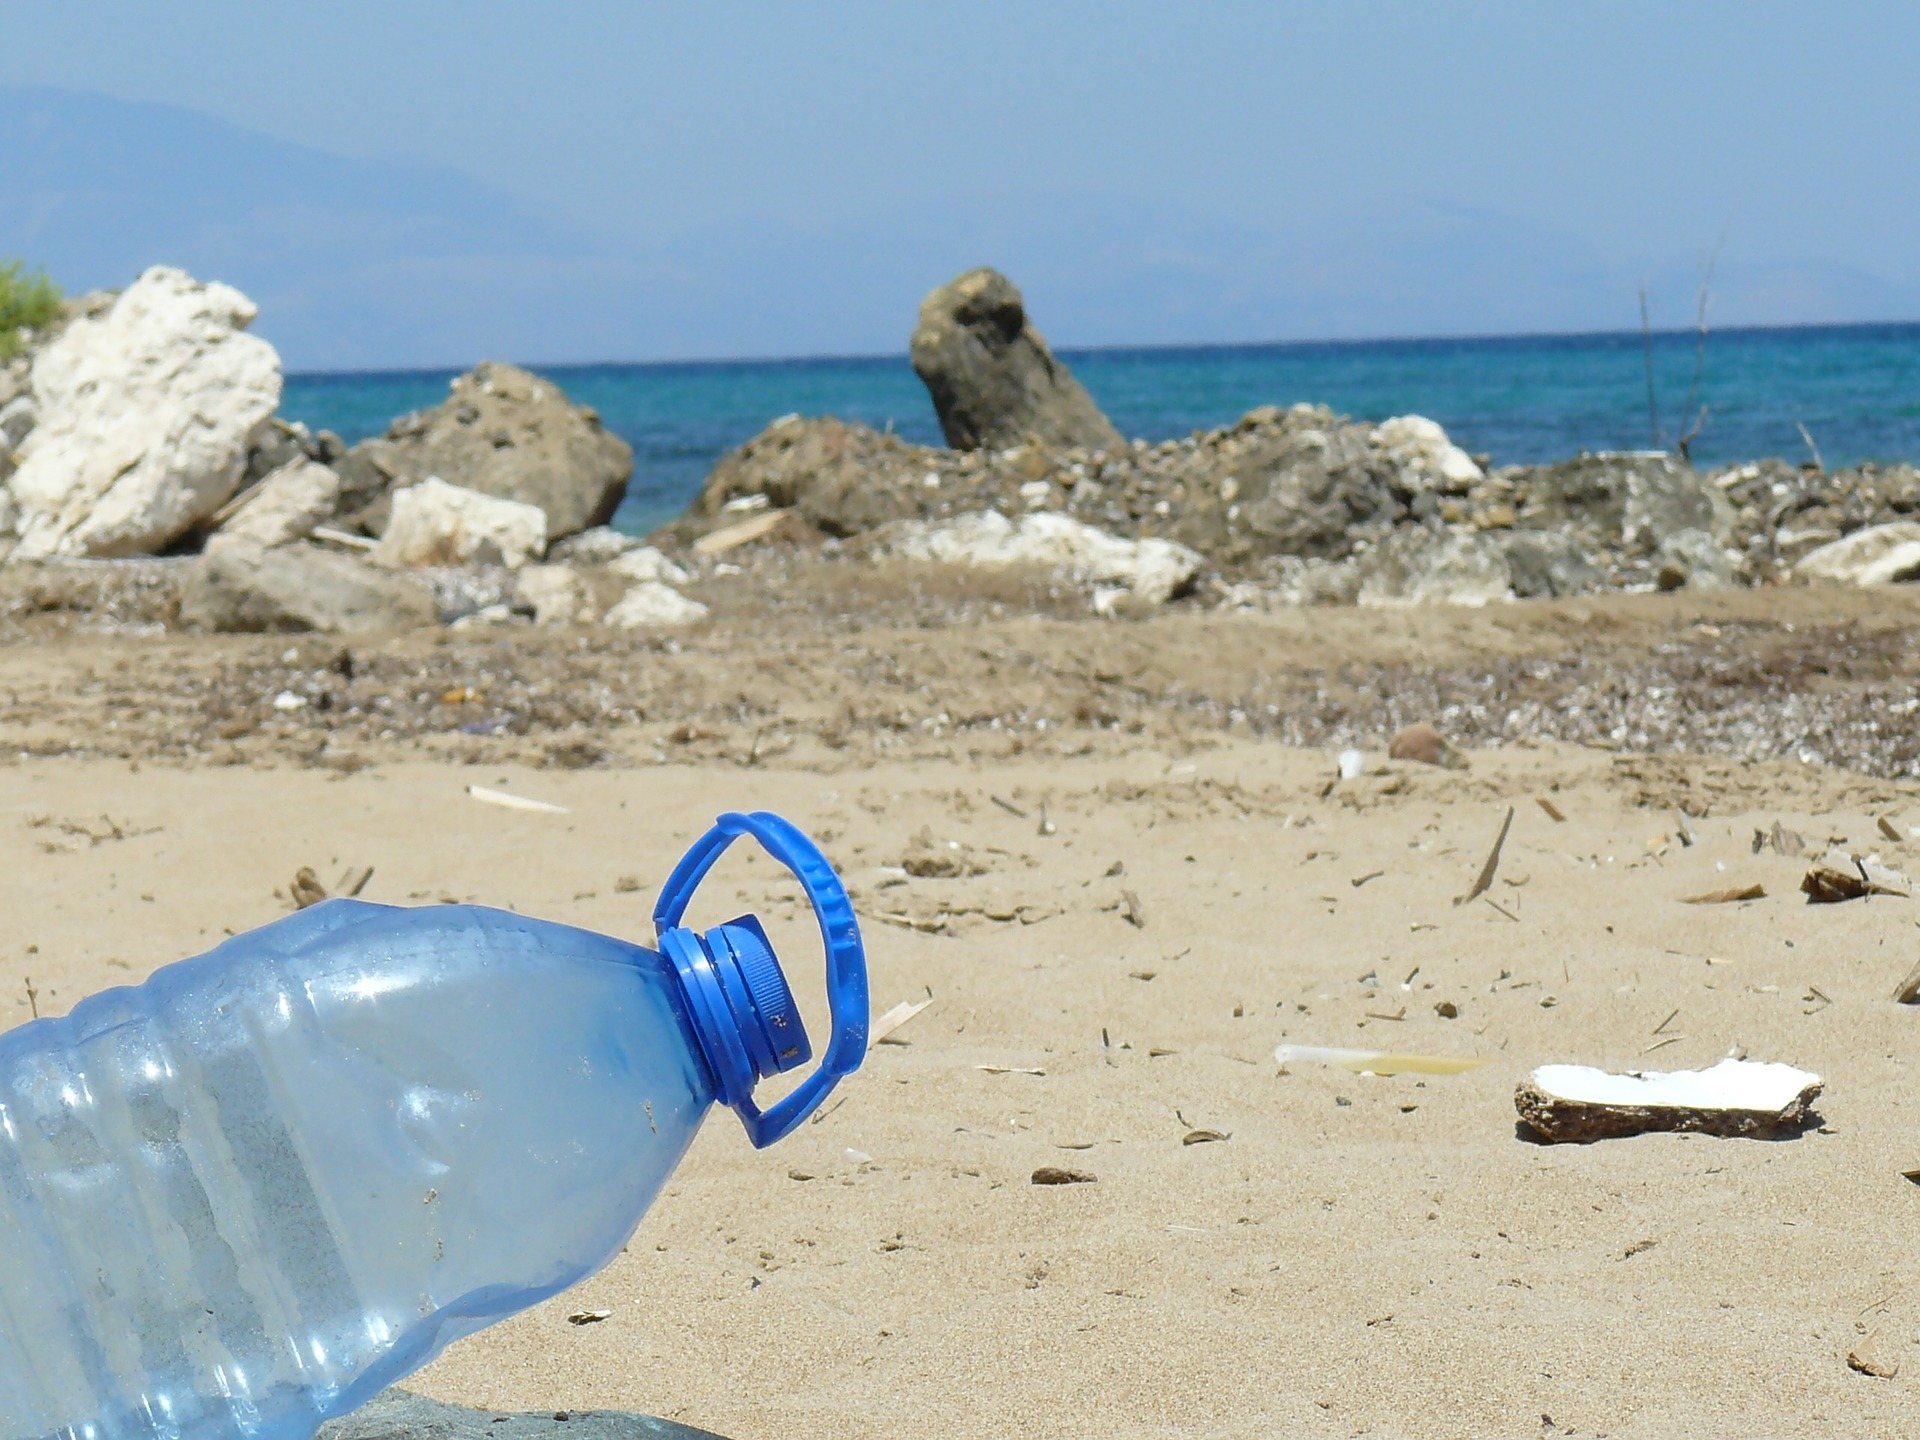 Plastic bottles recycling in the crisis